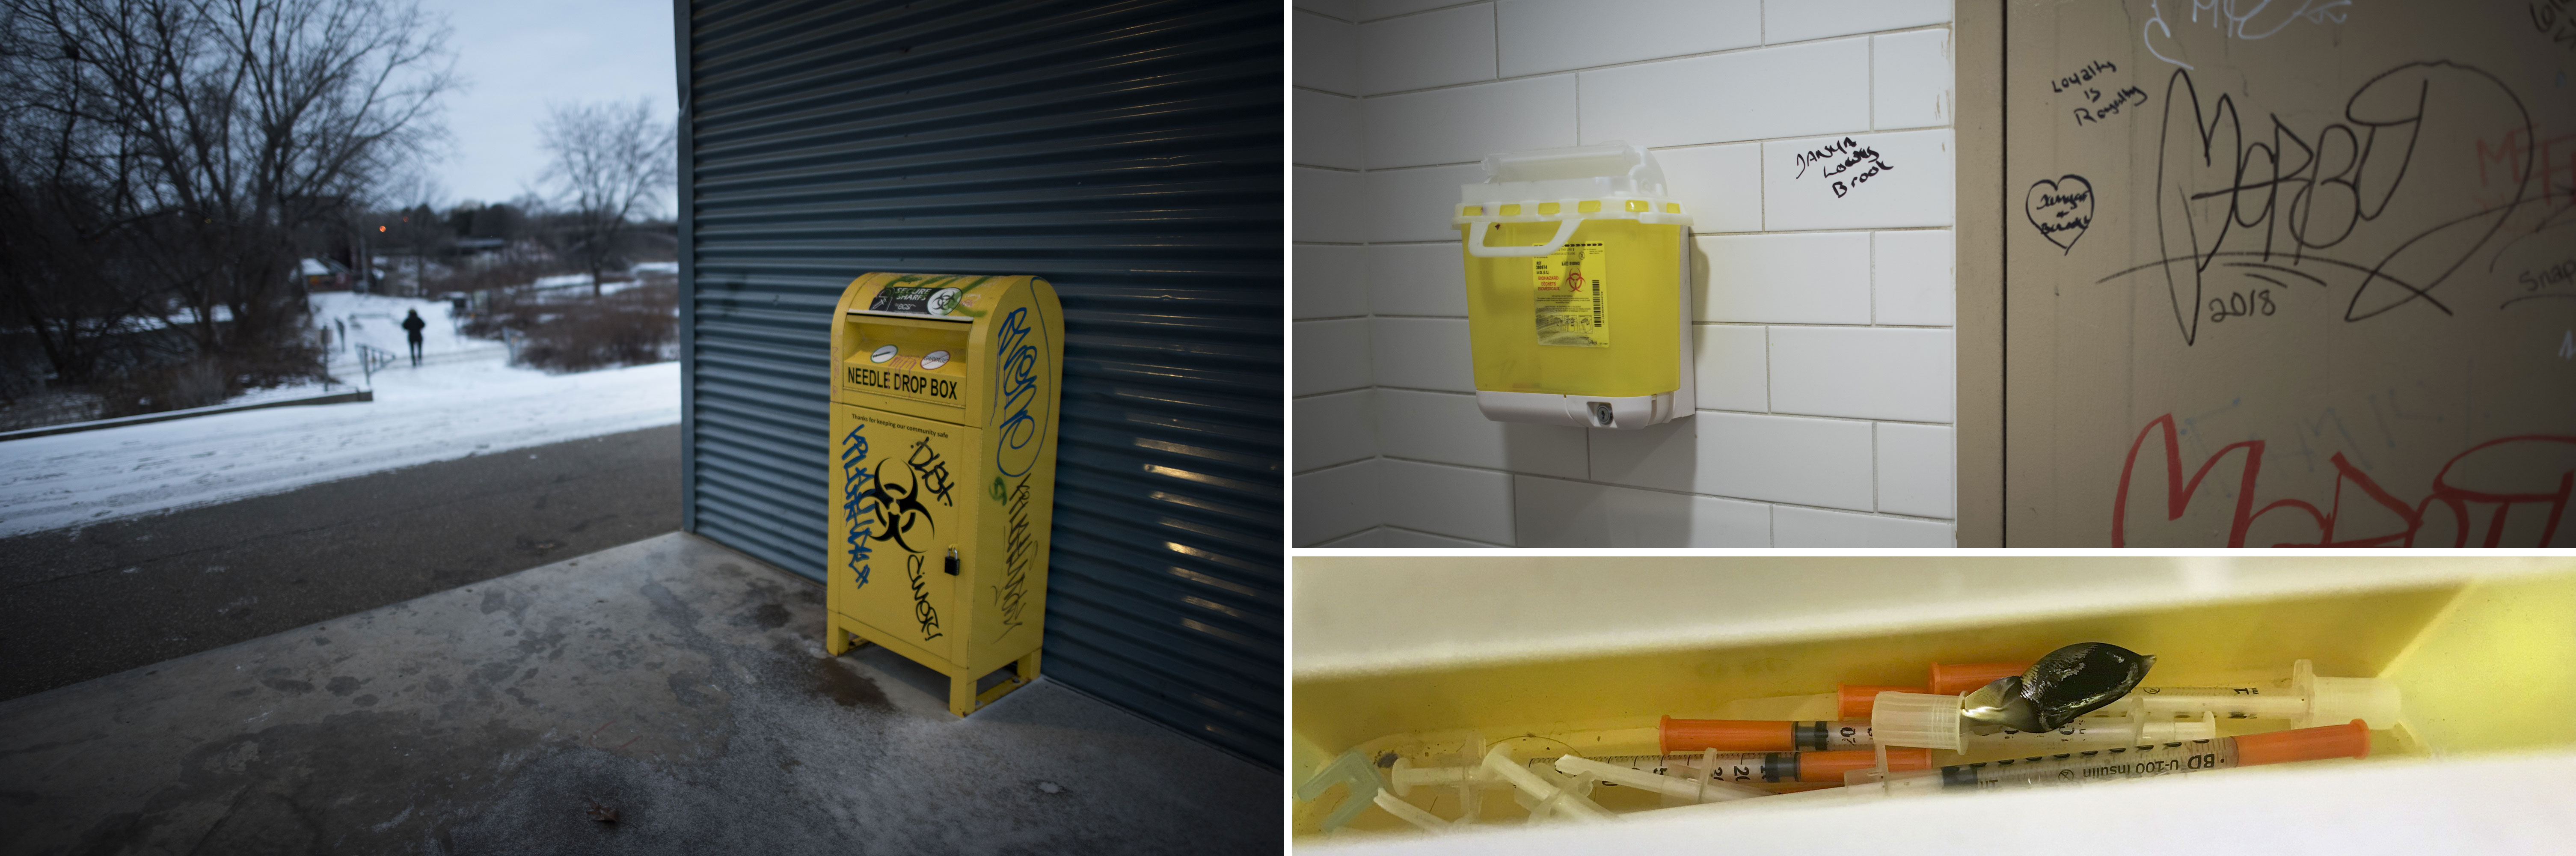 Yellow boxes to dispose of used needles are now a fixture in Brantford. At left, a dropbox outside the Elements Casino Brantford; at right, a sharps collector hangs from the wall of a washroom at a downtown Tim Horton's.